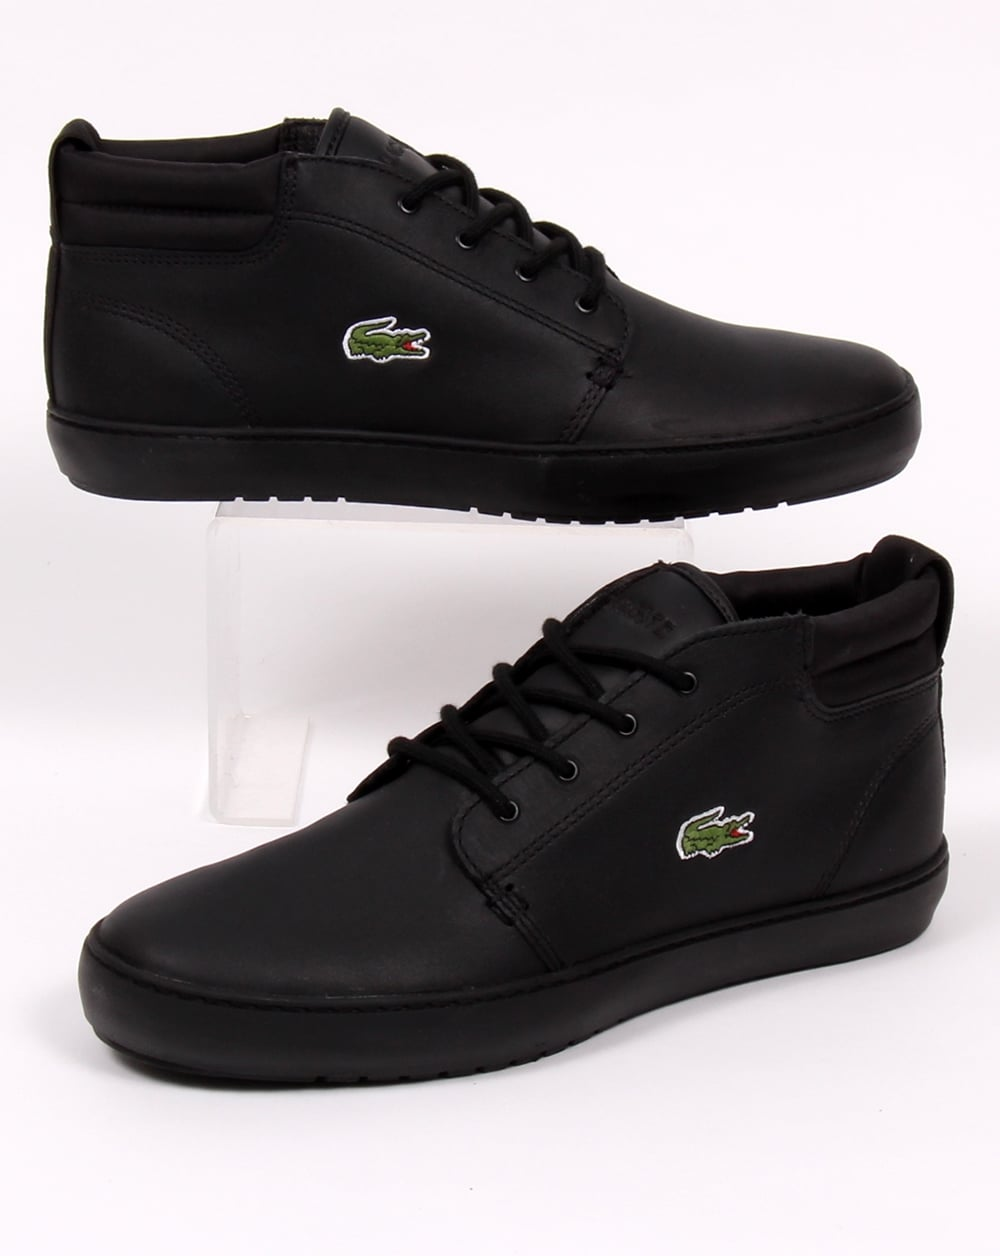 be2c10f75700b Lacoste Lacoste Ampthill Terra Boots Black Leather